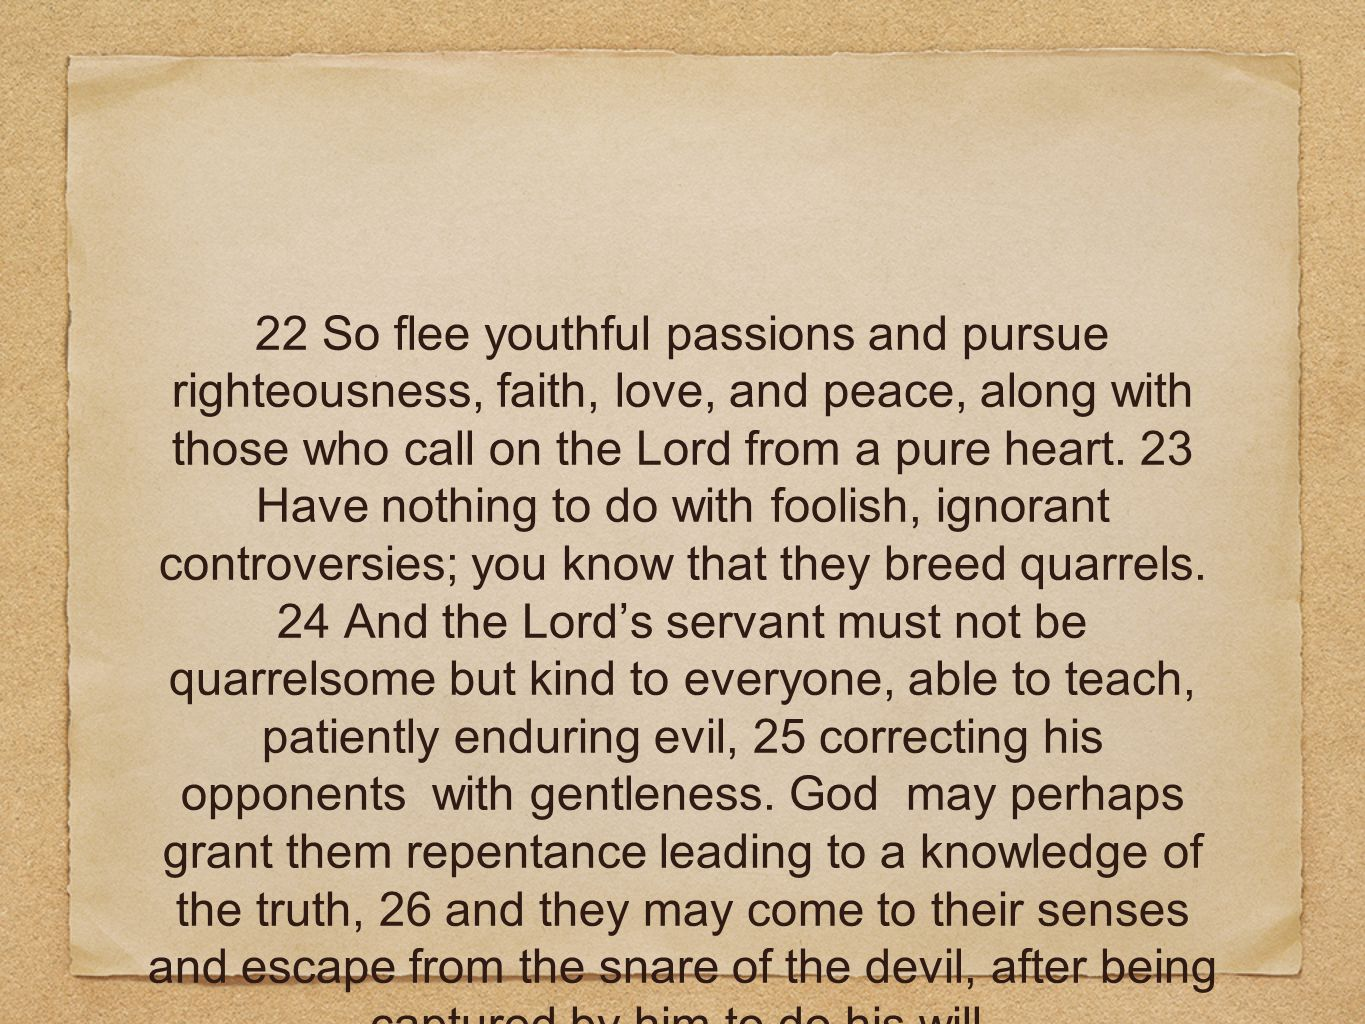 22 So flee youthful passions and pursue righteousness, faith, love, and peace, along with those who call on the Lord from a pure heart.